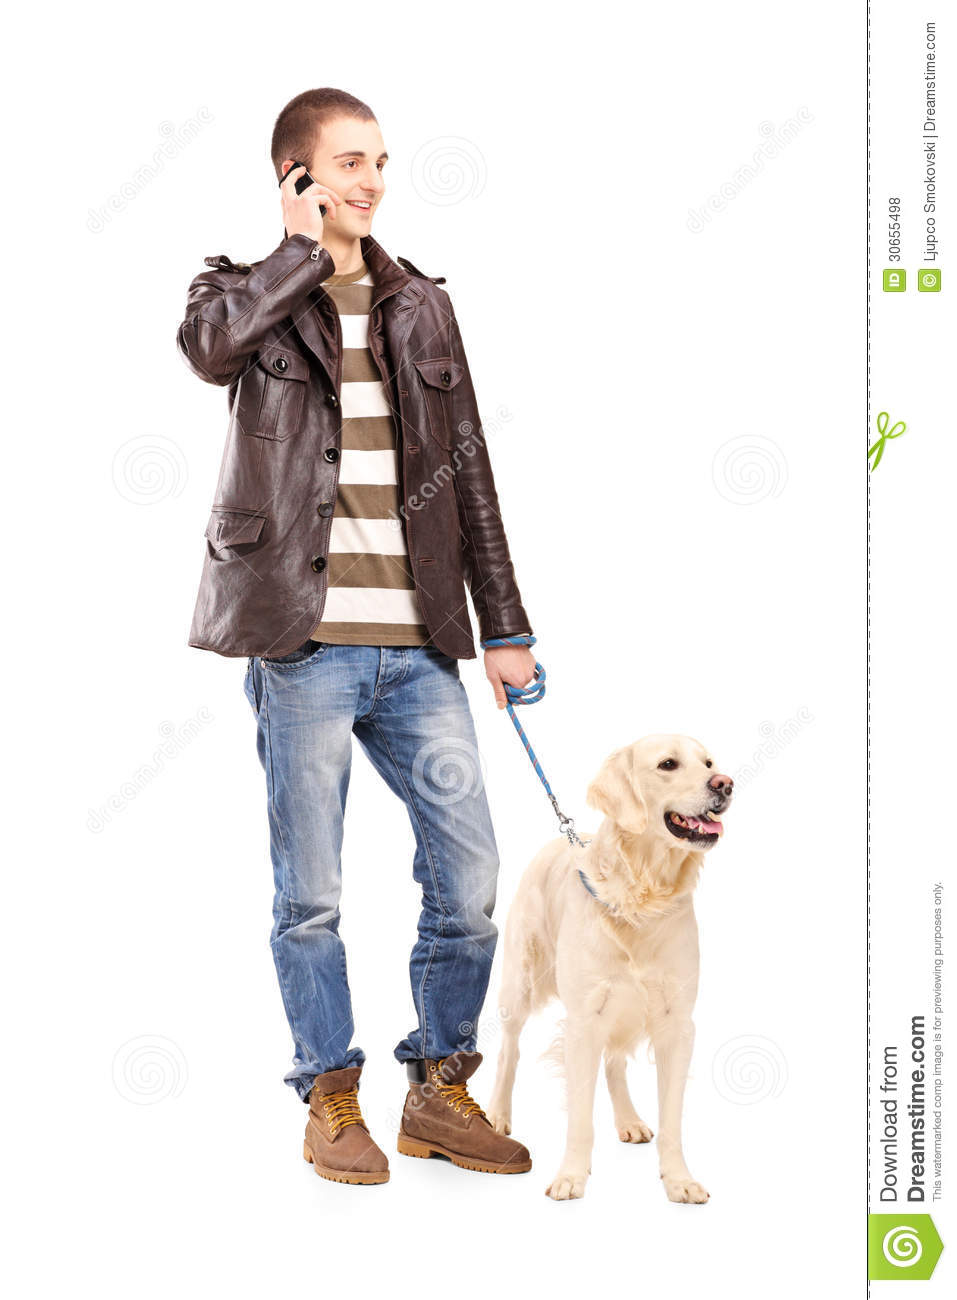 Man Walking Dog : Full length portrait of a young man walking dog and